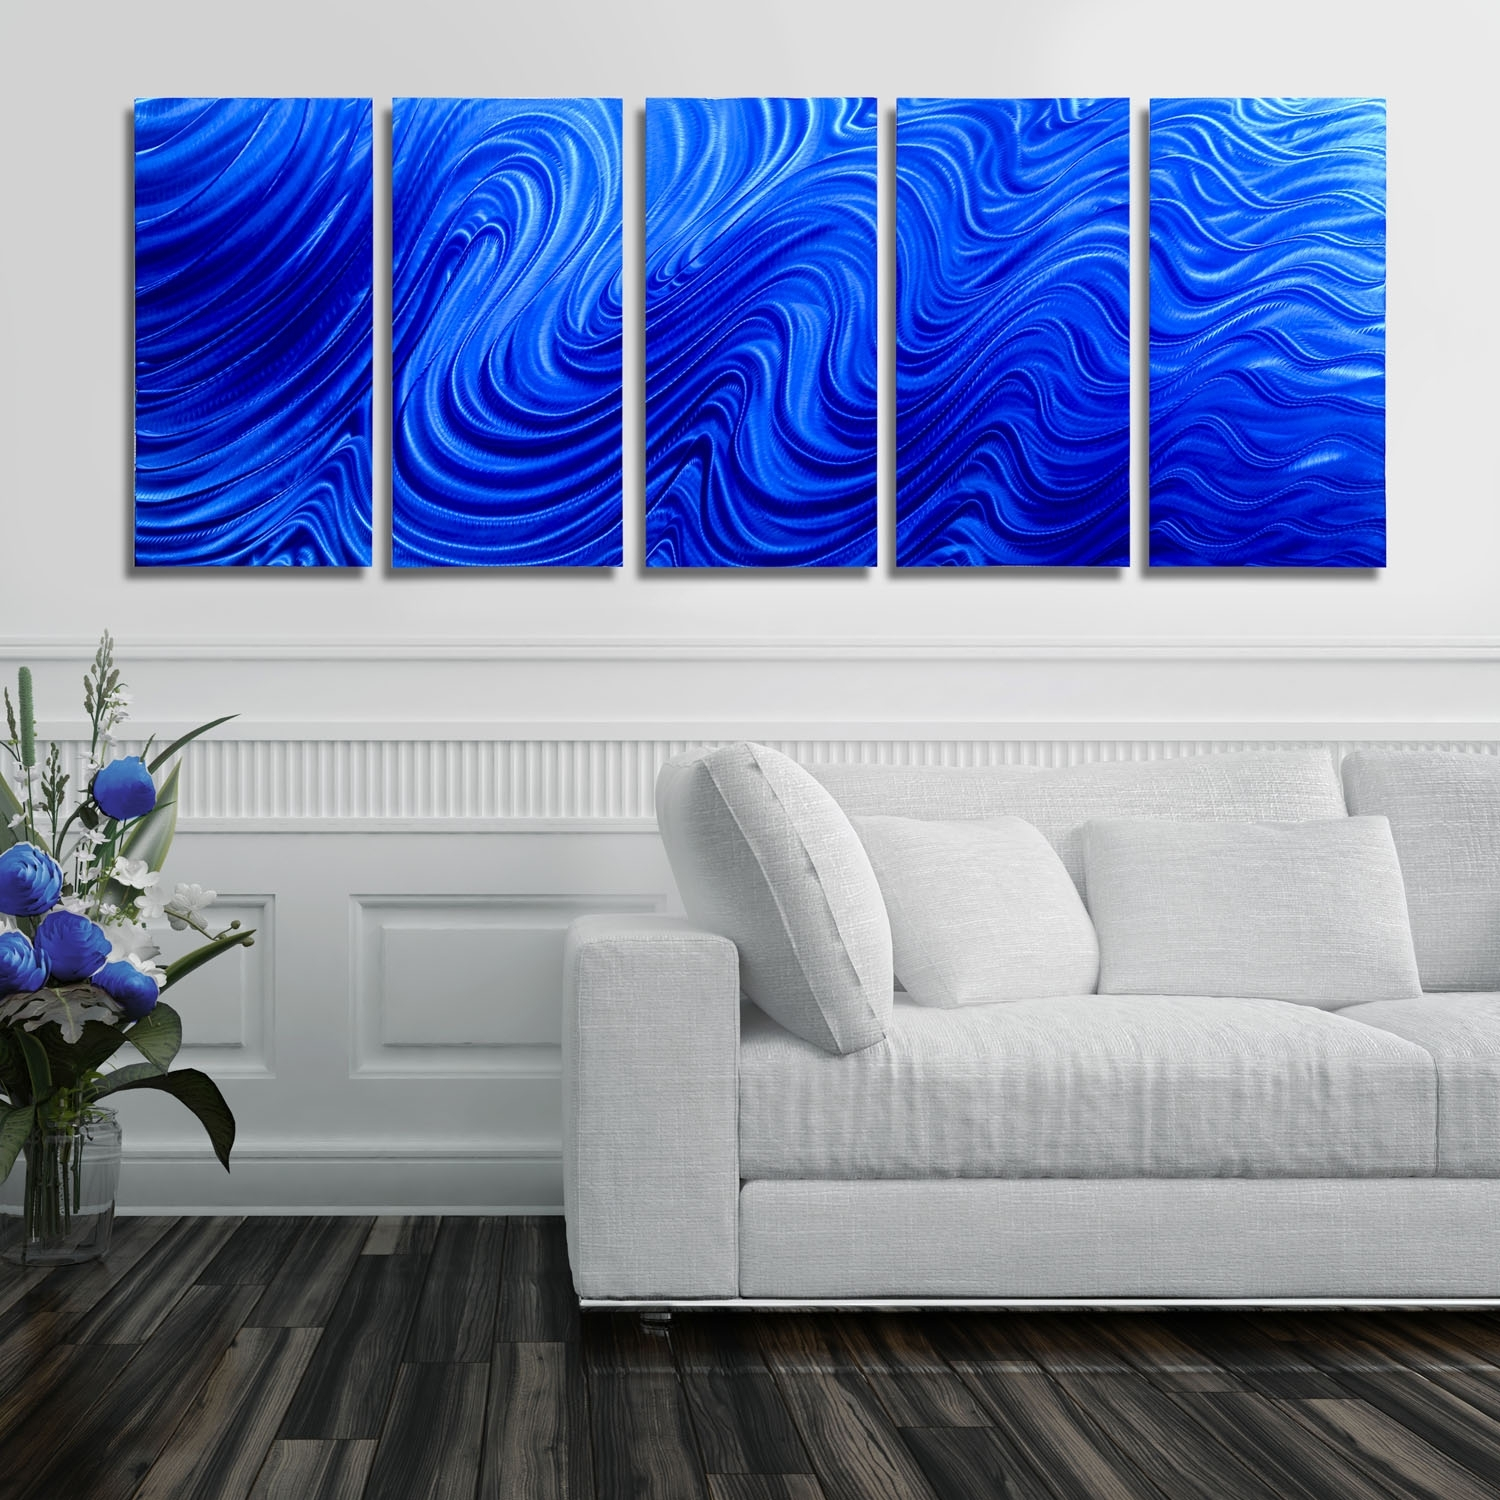 Classy 10+ Abstract Metal Wall Art Design Inspiration Of Best 25+ Inside 2017 Kindred Abstract Metal Wall Art (View 4 of 20)